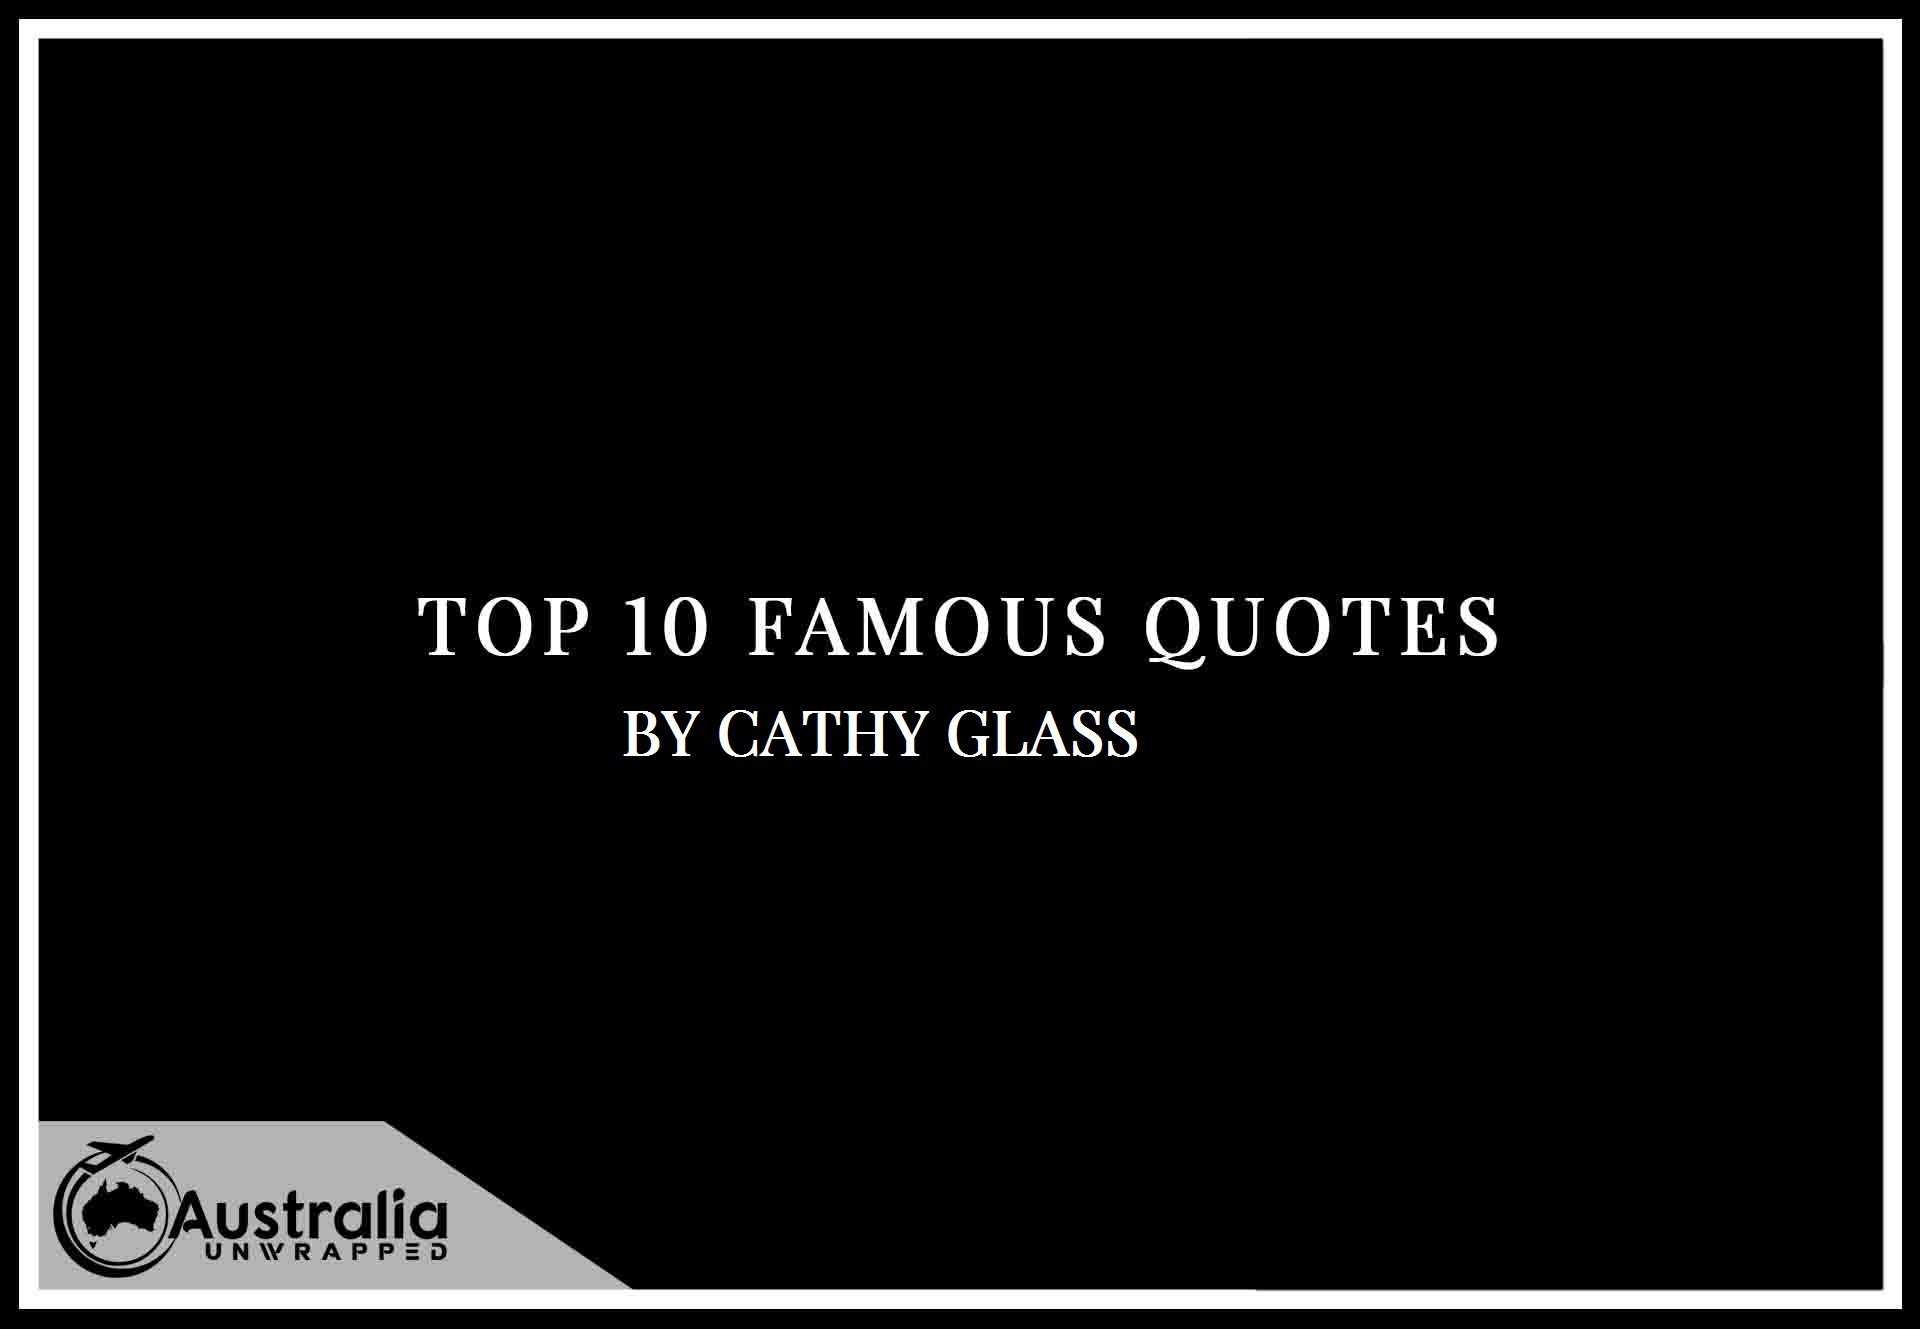 Cathy Glass's Top 10 Popular and Famous Quotes